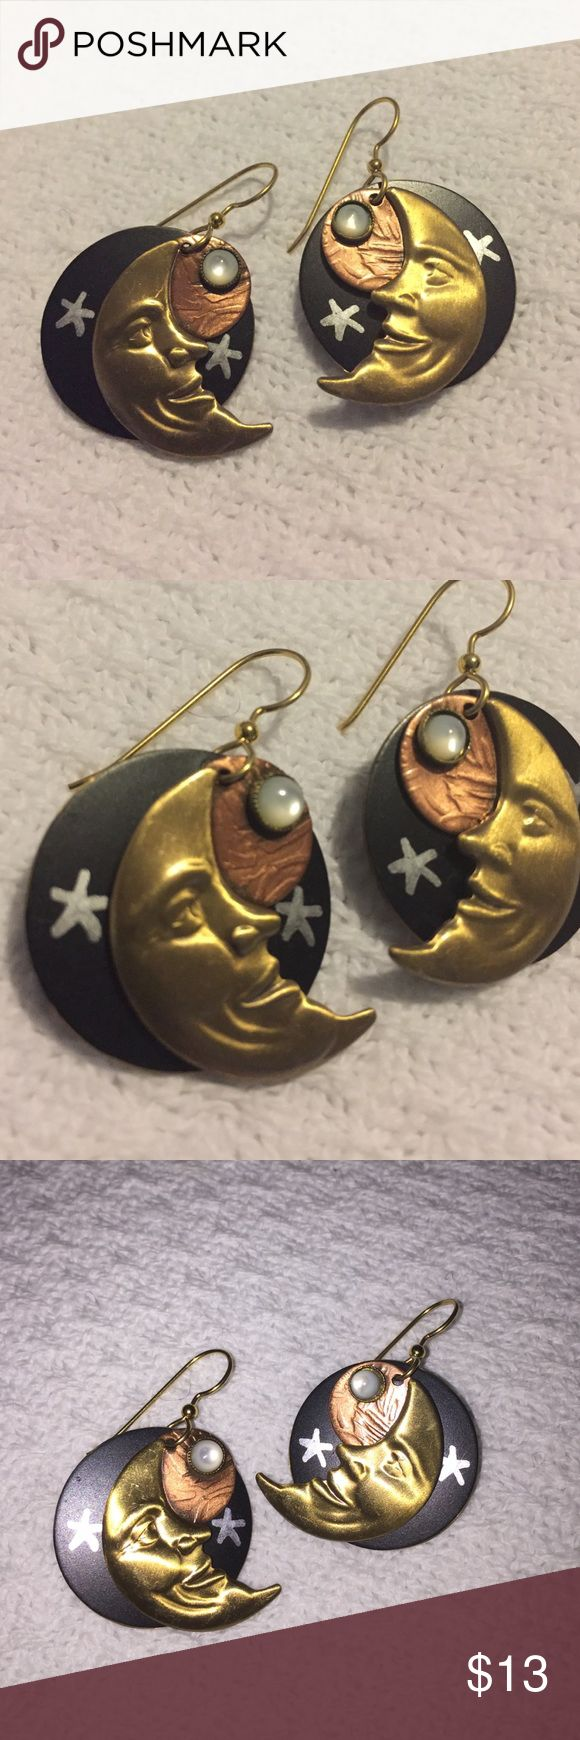 """Handcrafted Half Moon Planet Galaxy Stars Earrings Handcrafted Moon Planet Galaxy Earrings. Handmade using different metal tones in gold, copper, and/or brass. Highly detailed Earrings that are for pierced ears. Beautiful gold tone half moon raised face with a moonstone setting on a copper planet disc that also sits on a painted black night disc w/silver painted stars. Earrings Measure 1 1/2"""" L x 1"""" W. Great condition, like new! Jewelry Earrings"""